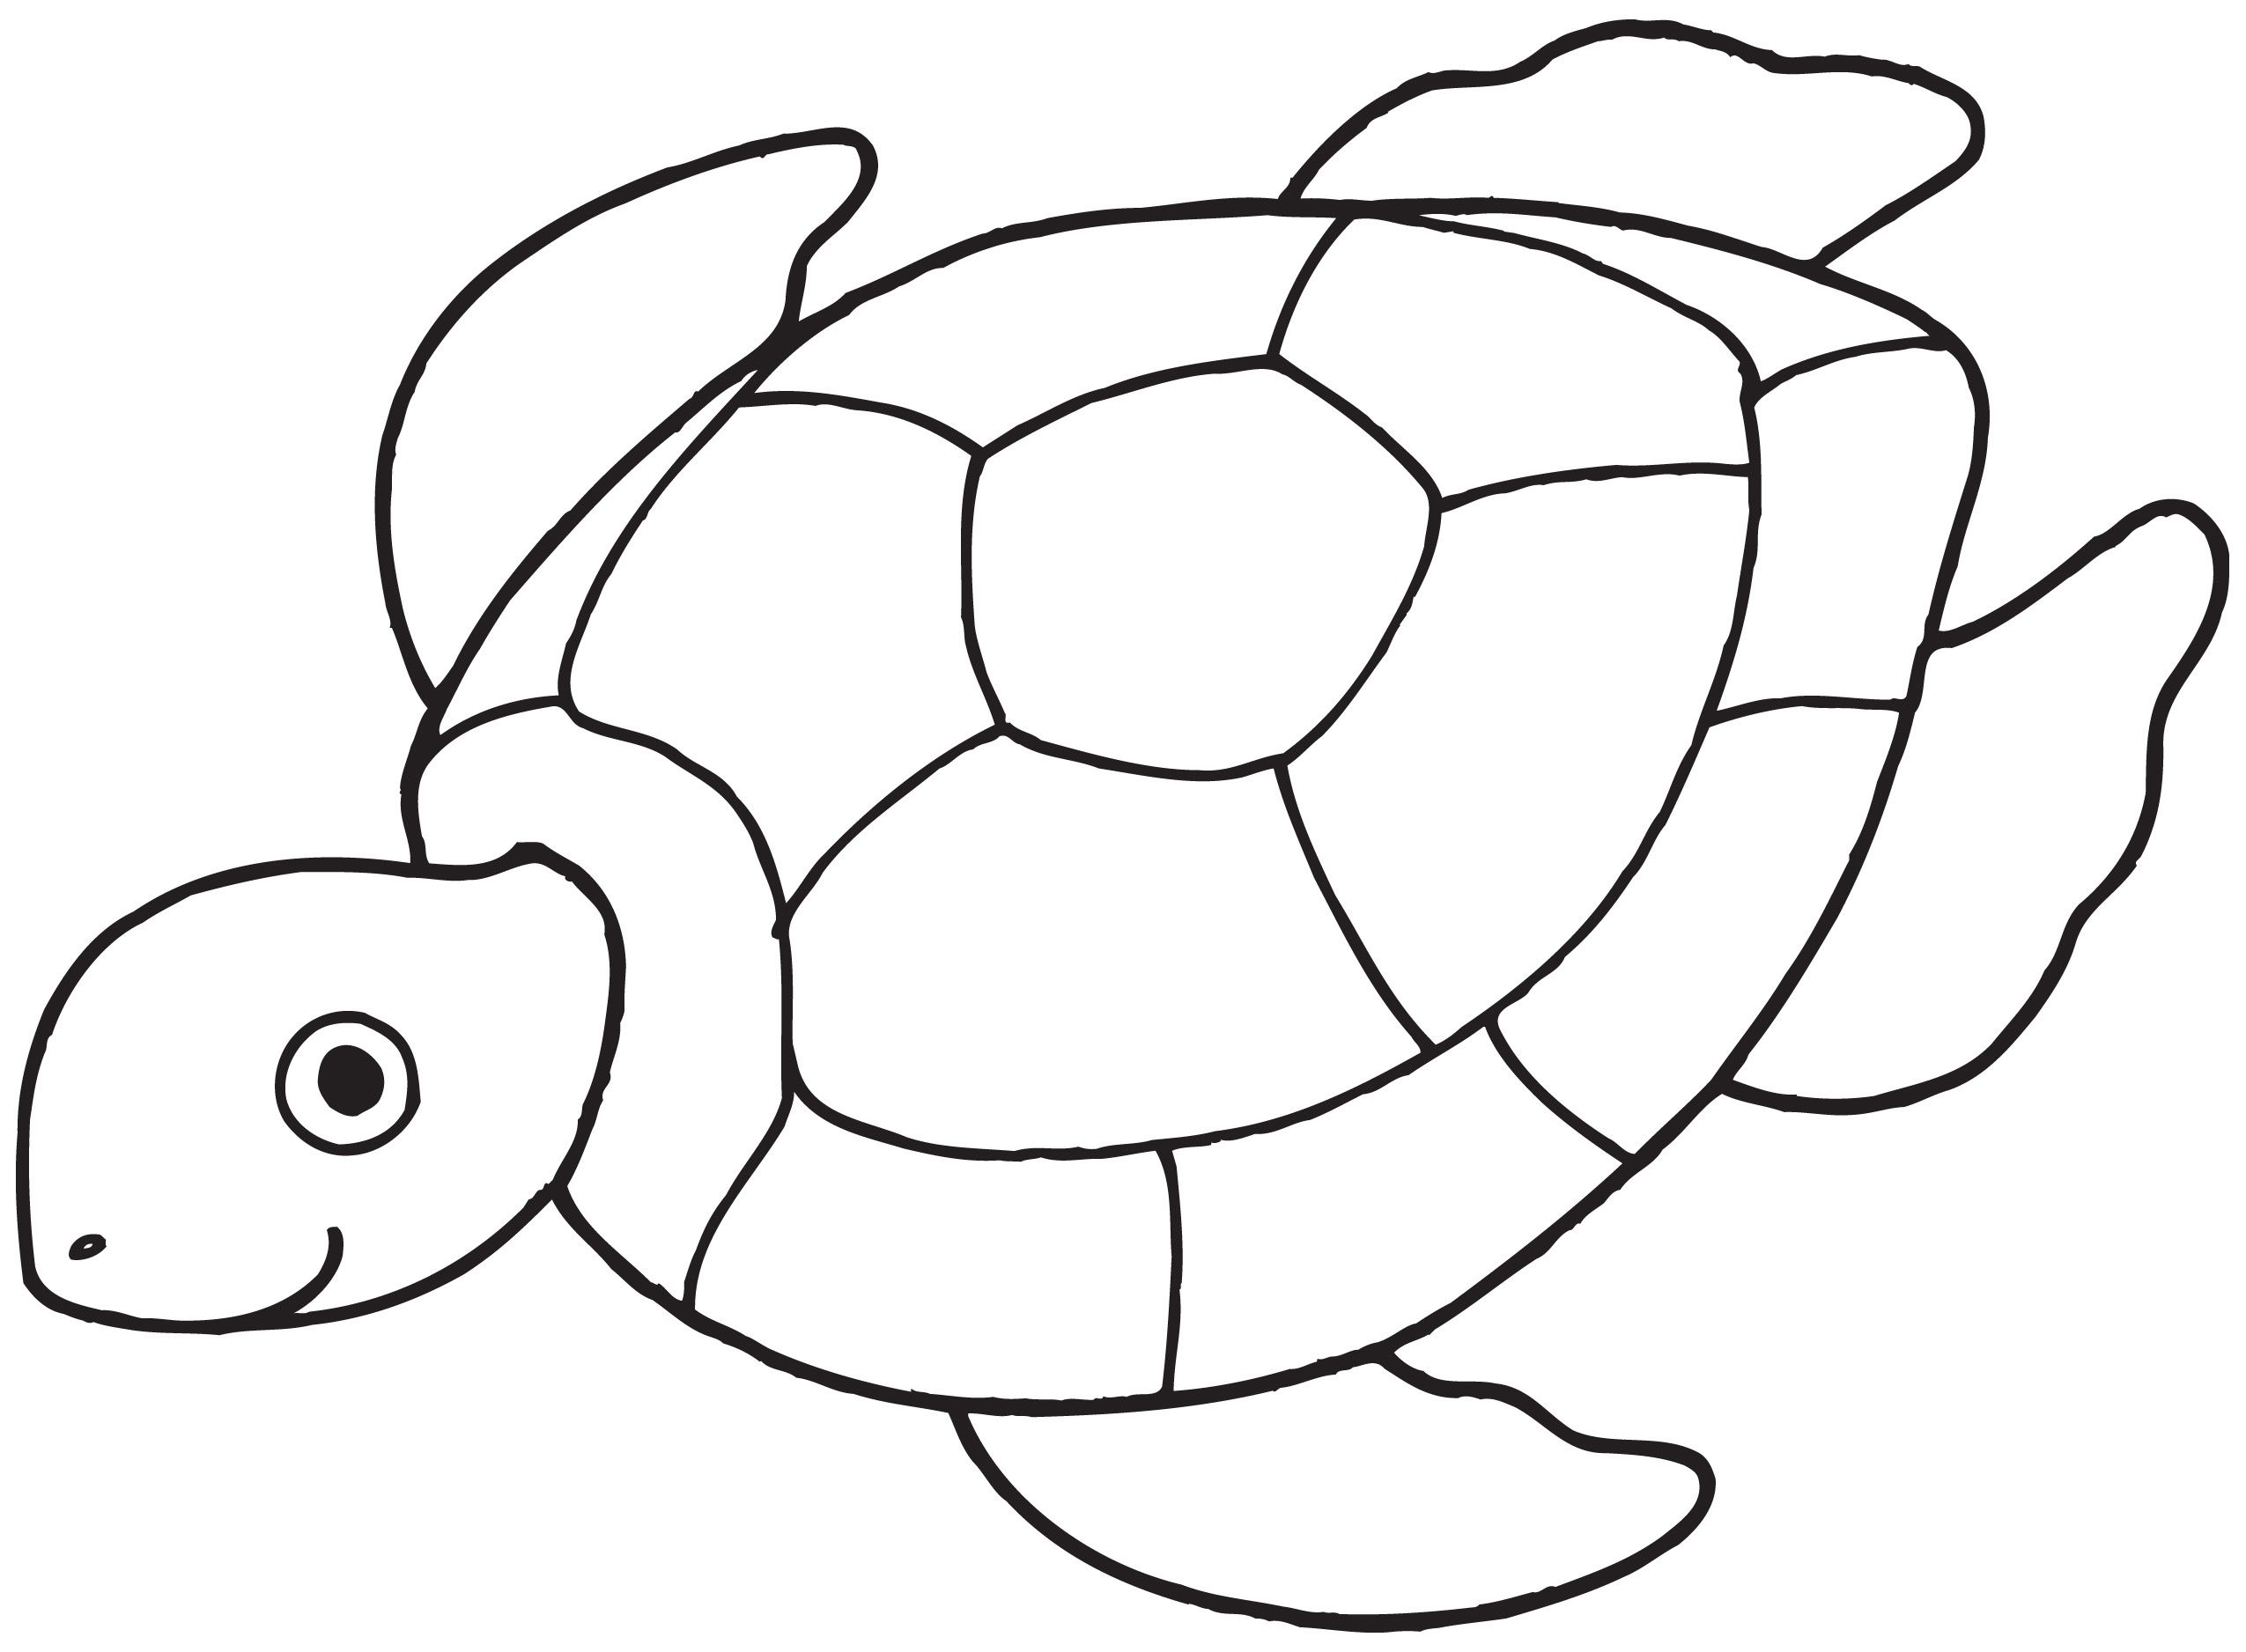 Turtle Coloring Pictures For Preschool You'll Love